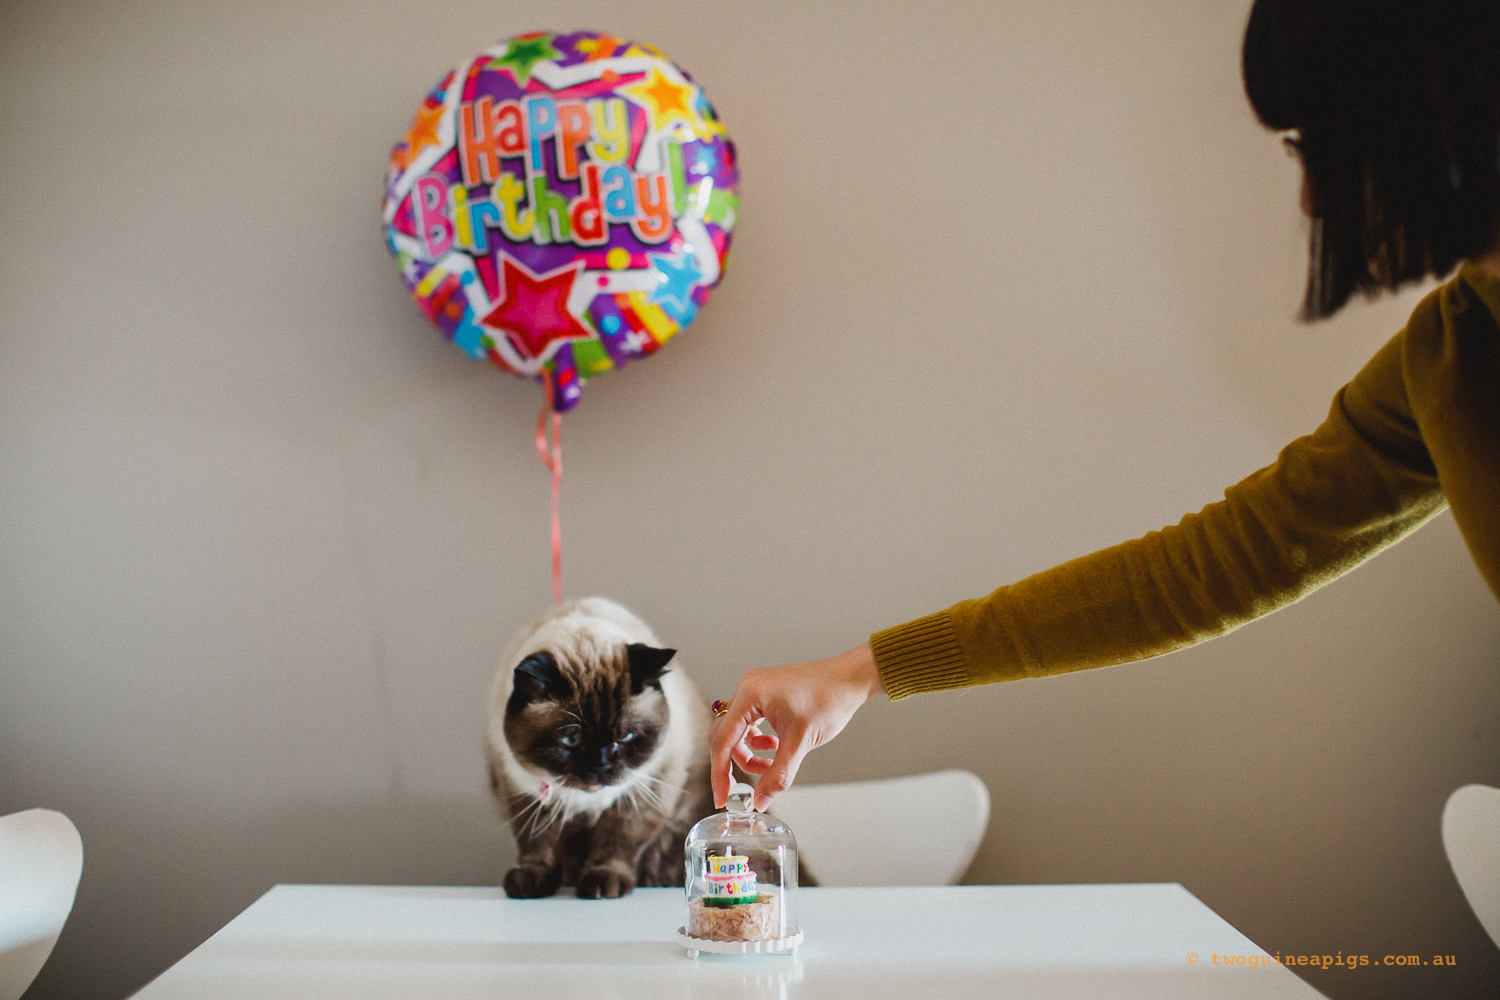 twoguineapigs_pet_photography_tiger_exotic_himalayan_cross_cat_10th_birthday_adventures